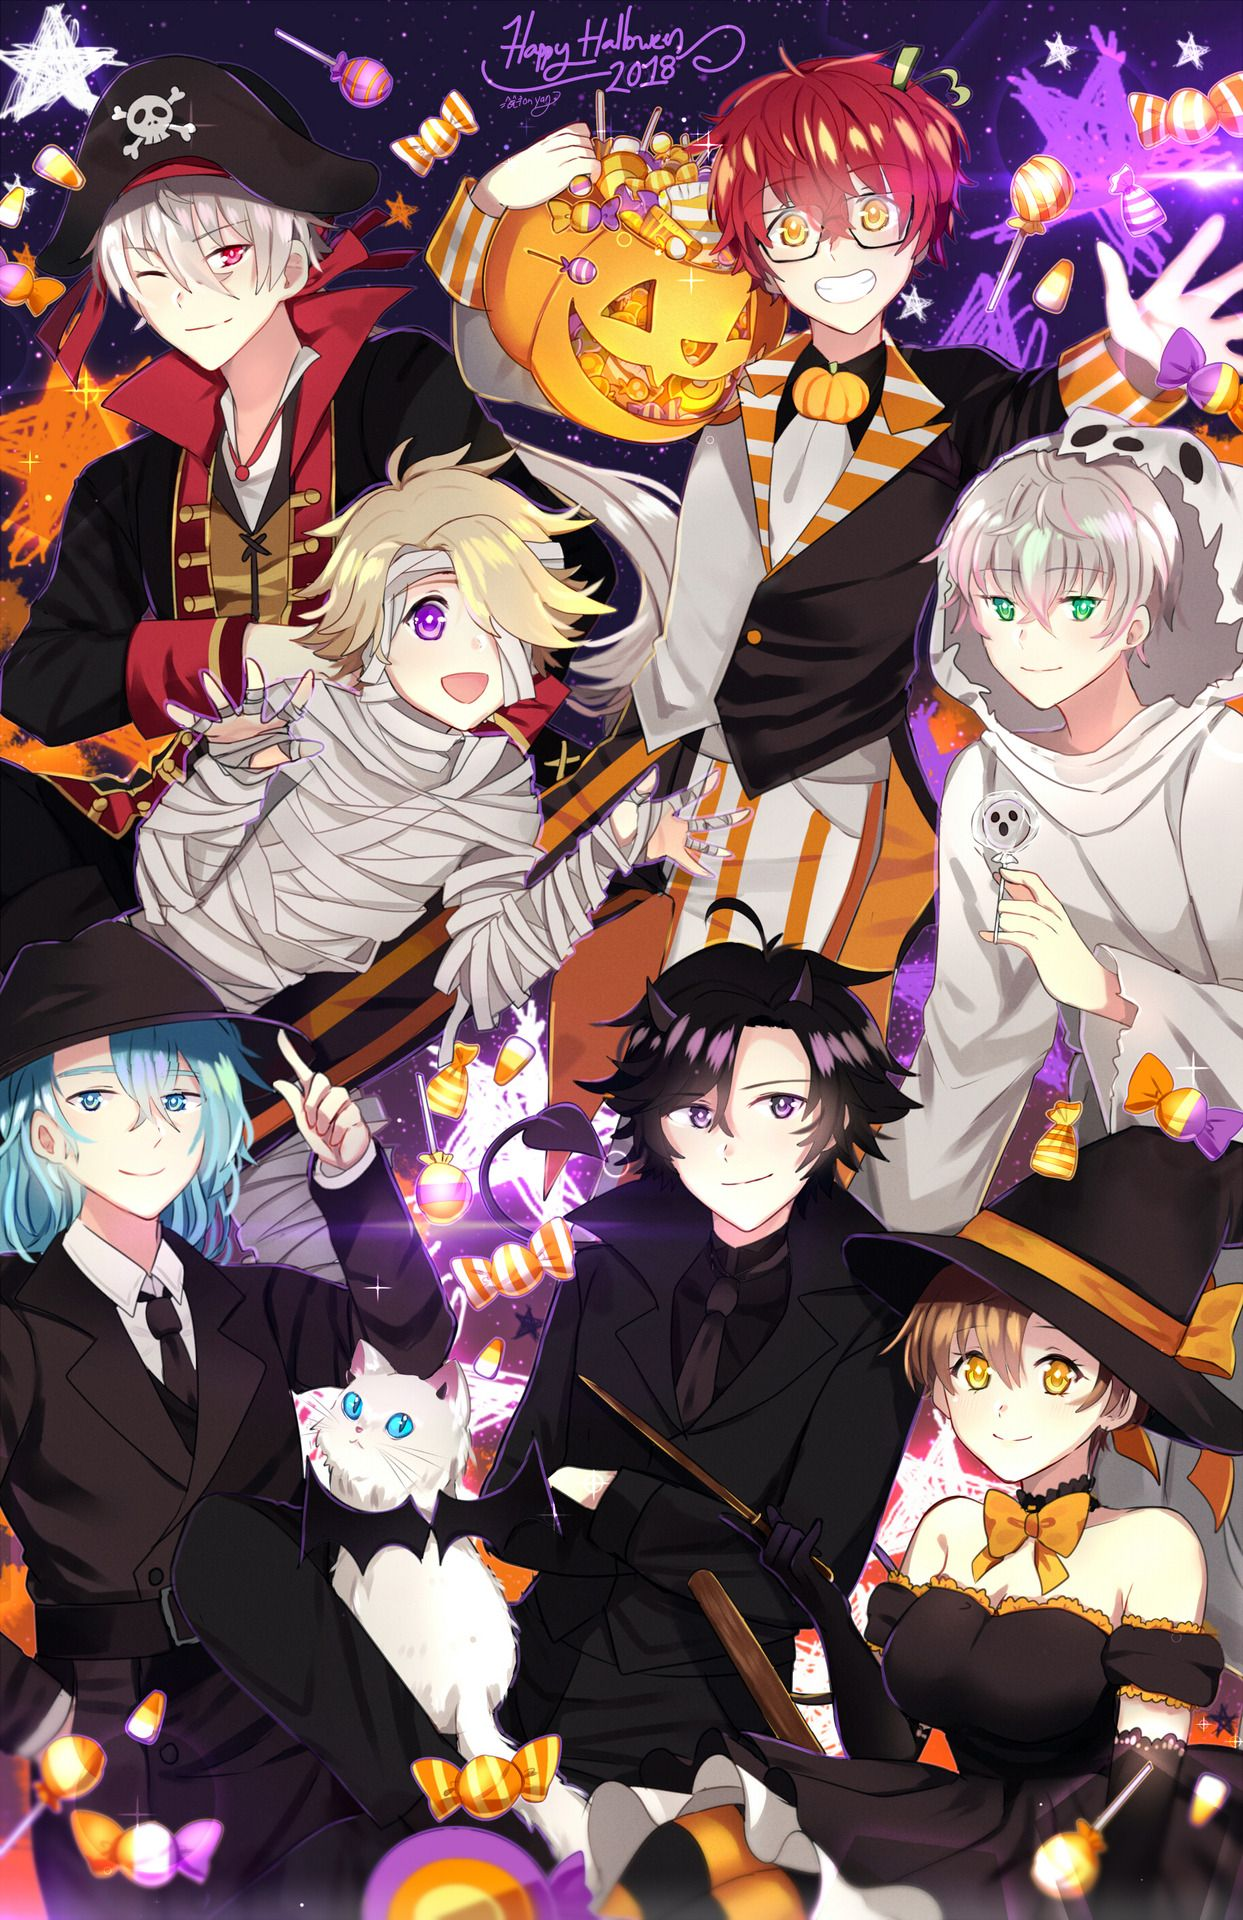 Mystic Messenger Halloween Event 2020 Pin by Rin Andrews on Mystic messenger in 2020 | Mystic messenger